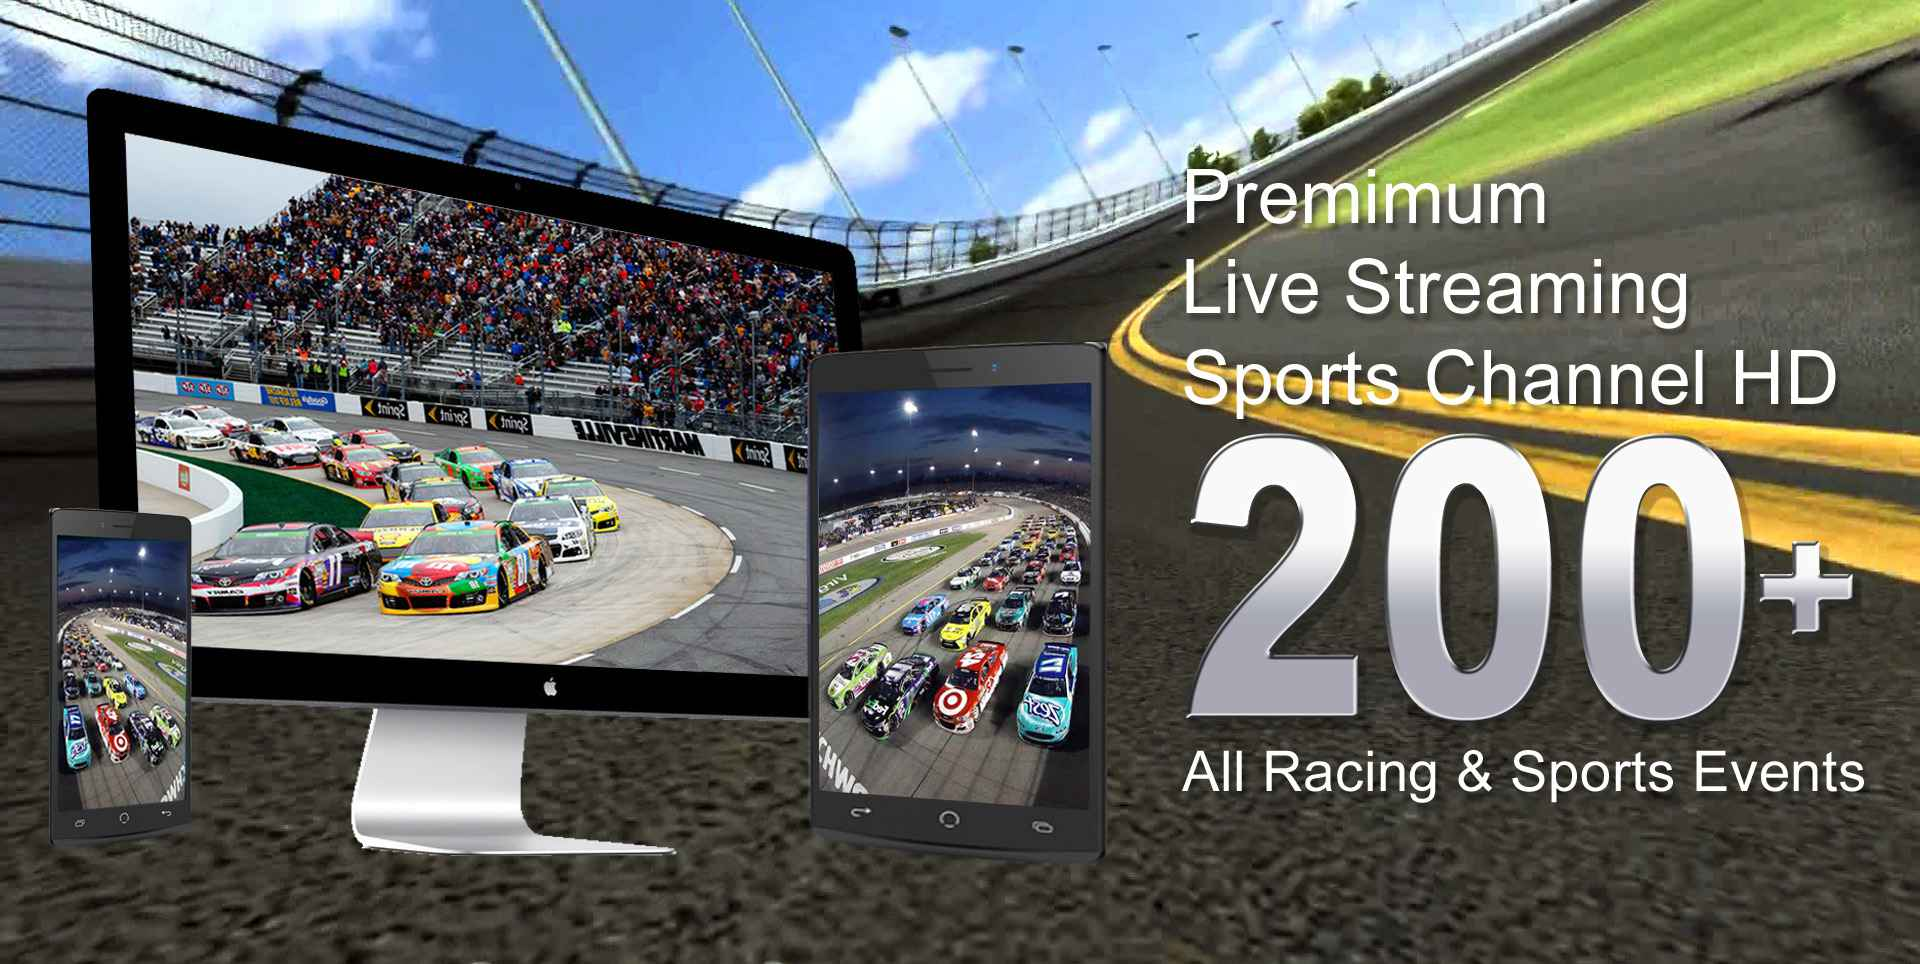 geico-500-live-at-talladega-superspeedway